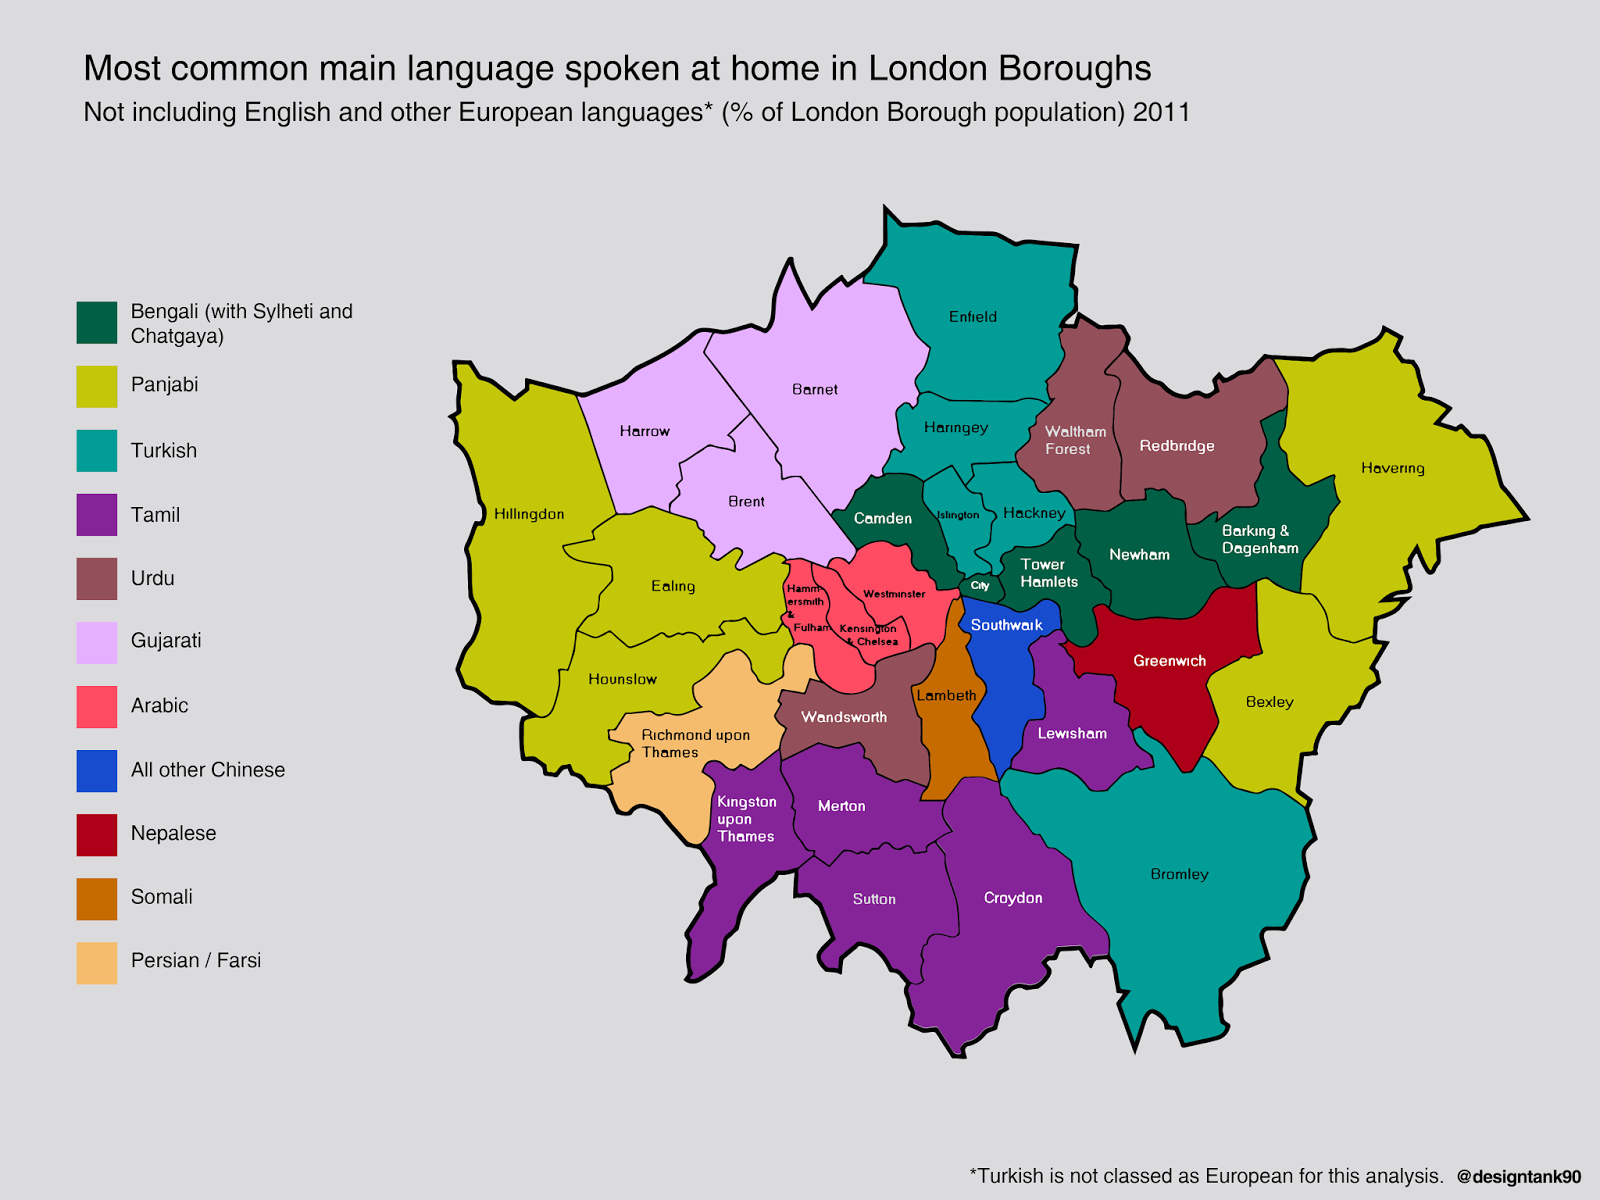 Most common main language spoken at home in London, not including the English language